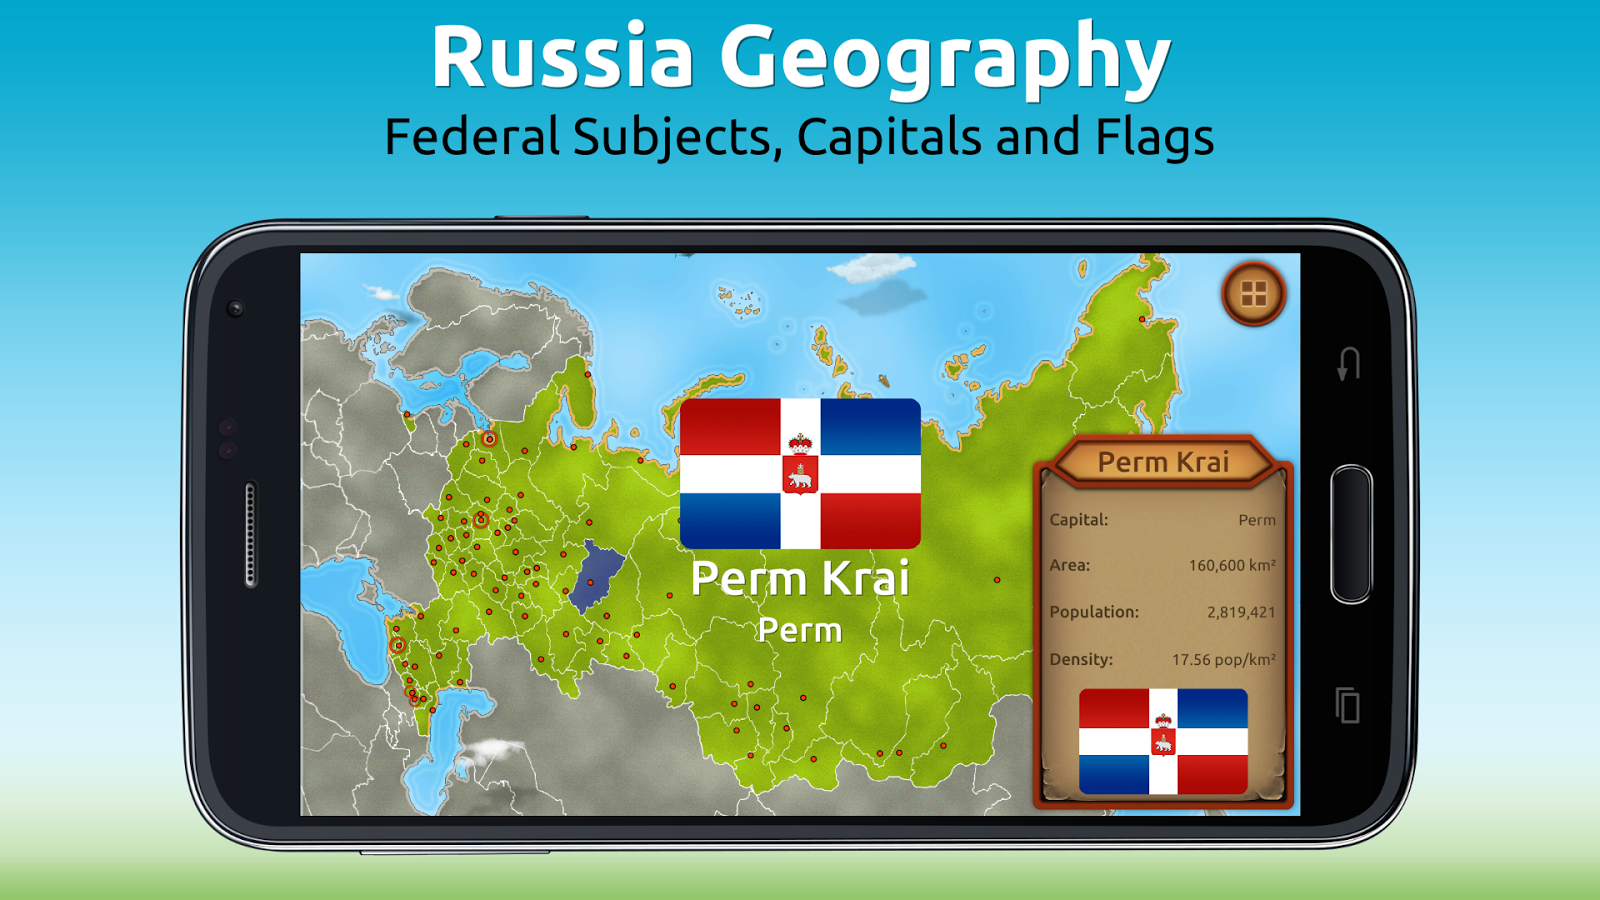 GeoExpert - Russia Geography Screenshot 0